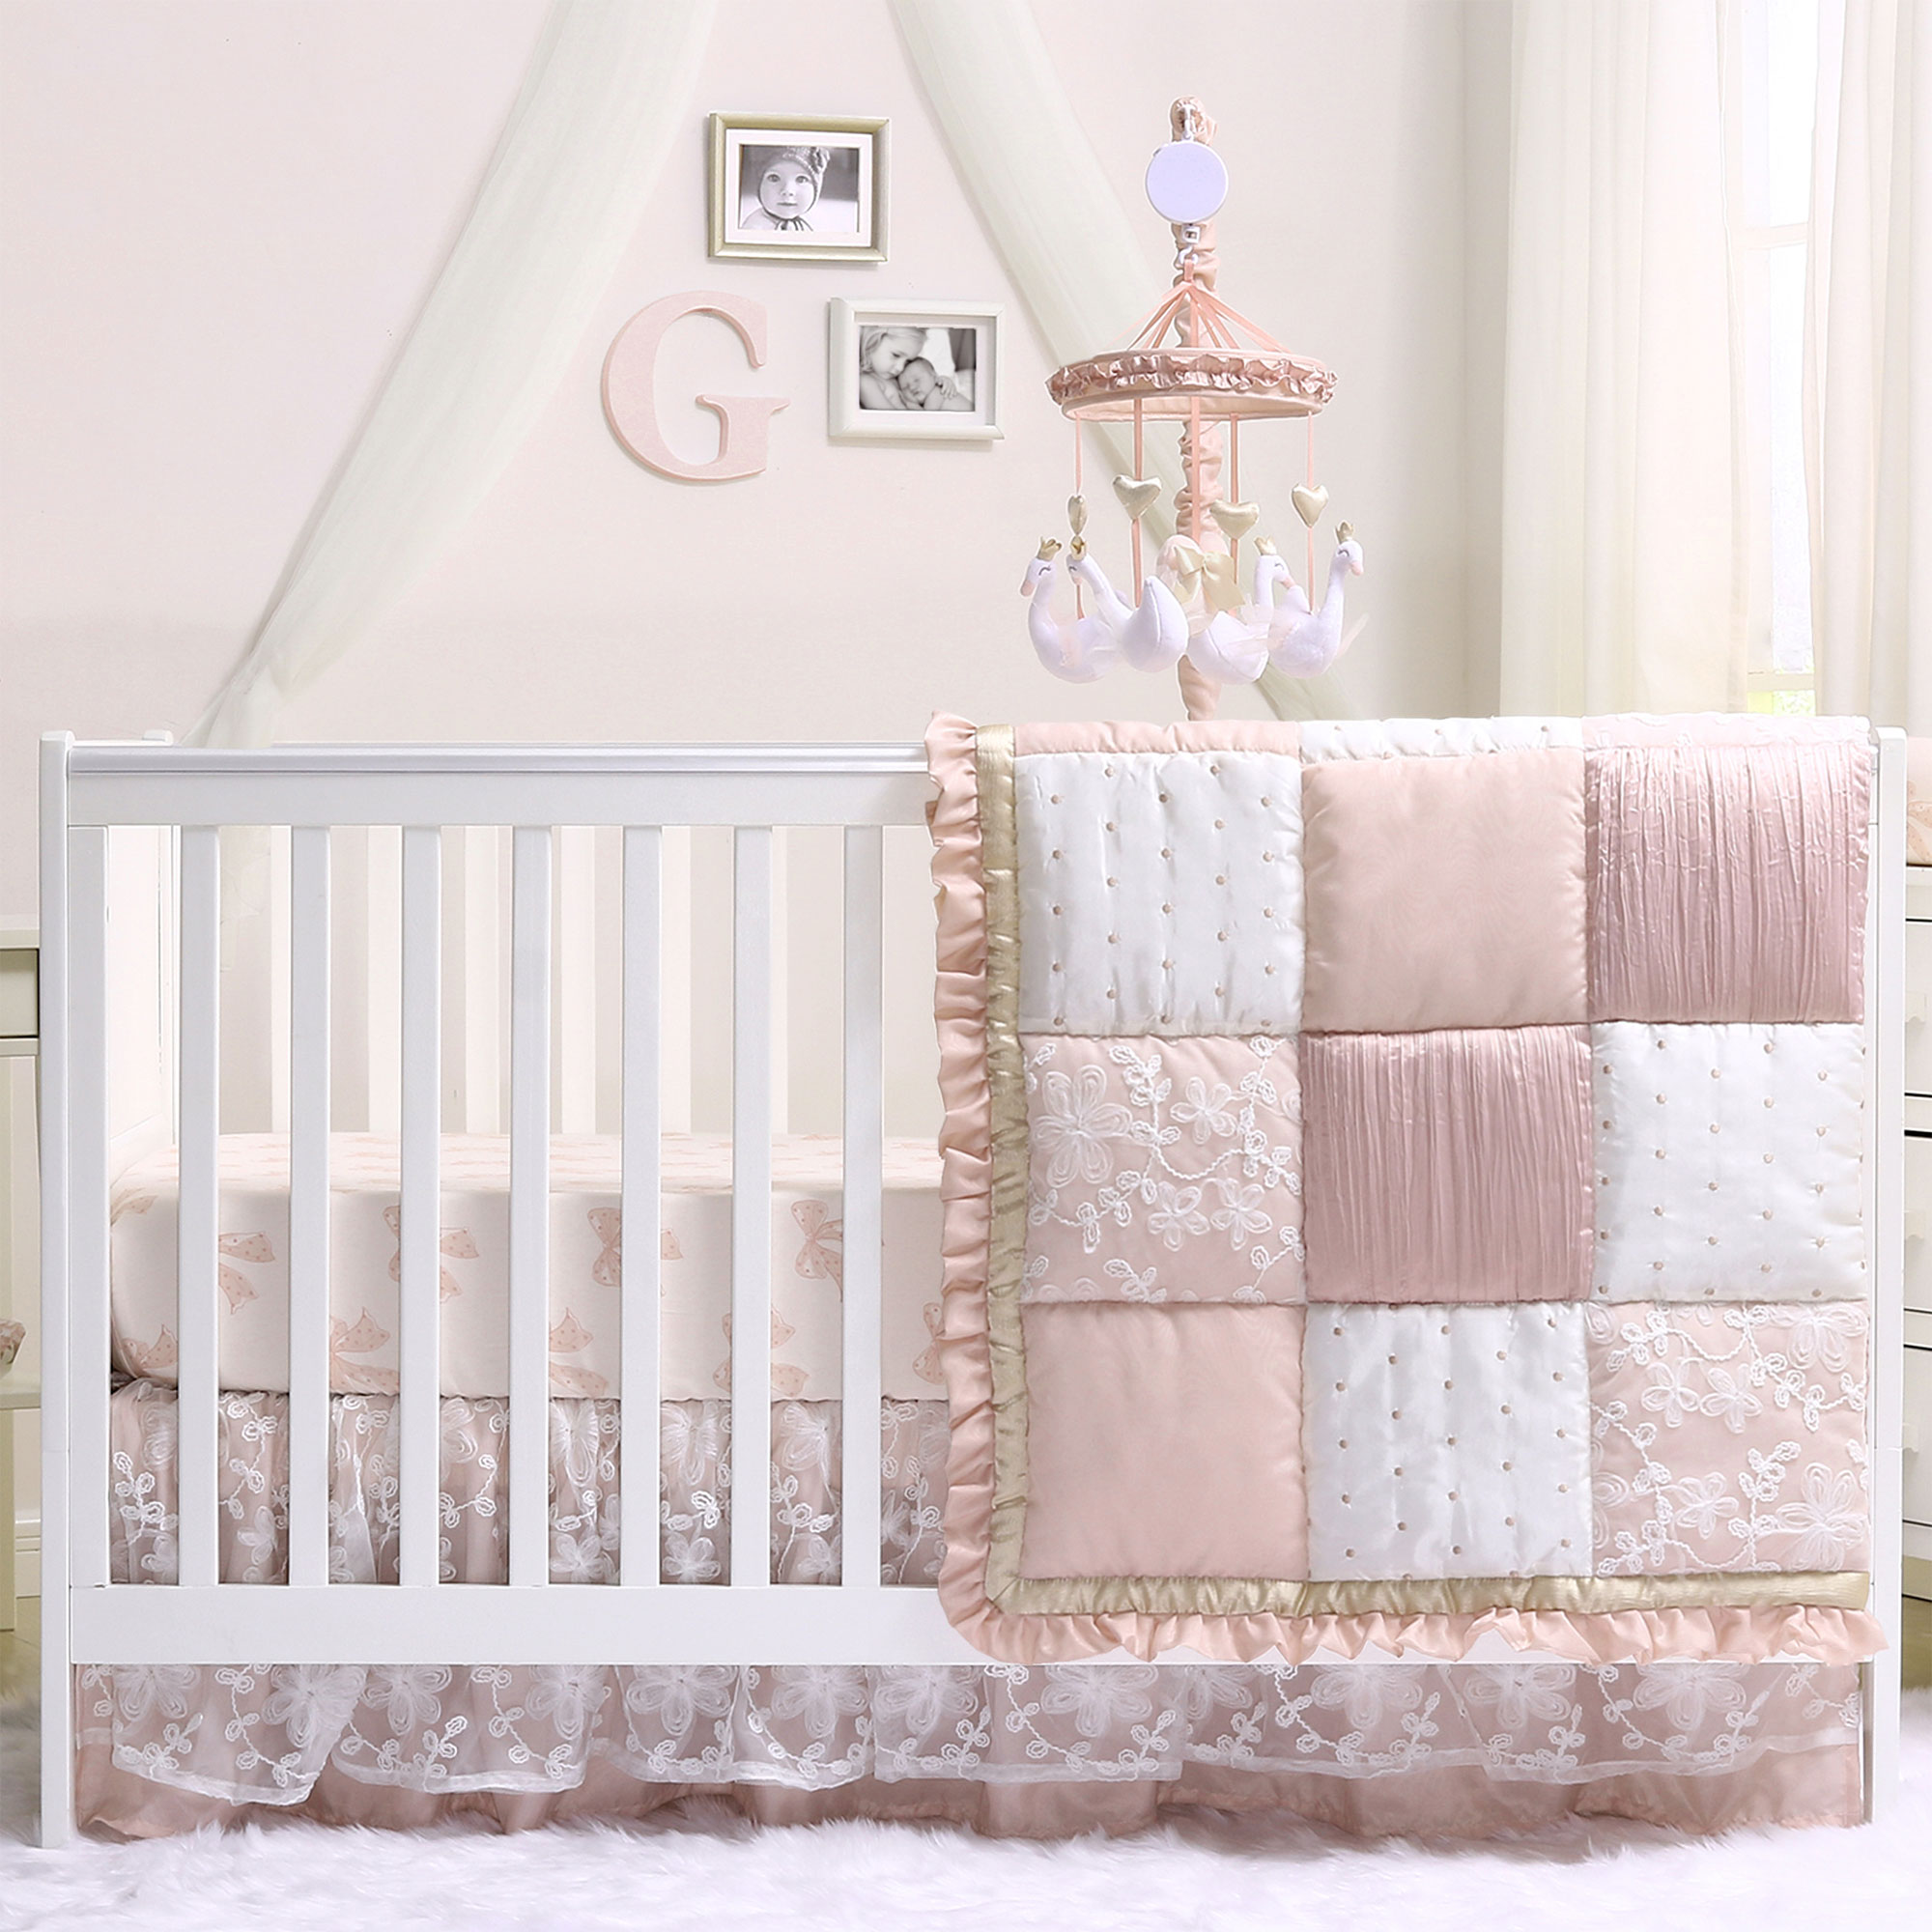 Baby Girl Crib Bedding - Dusty Pink Patchwork Design - Grace 5 Piece Set by The Peanut Shell